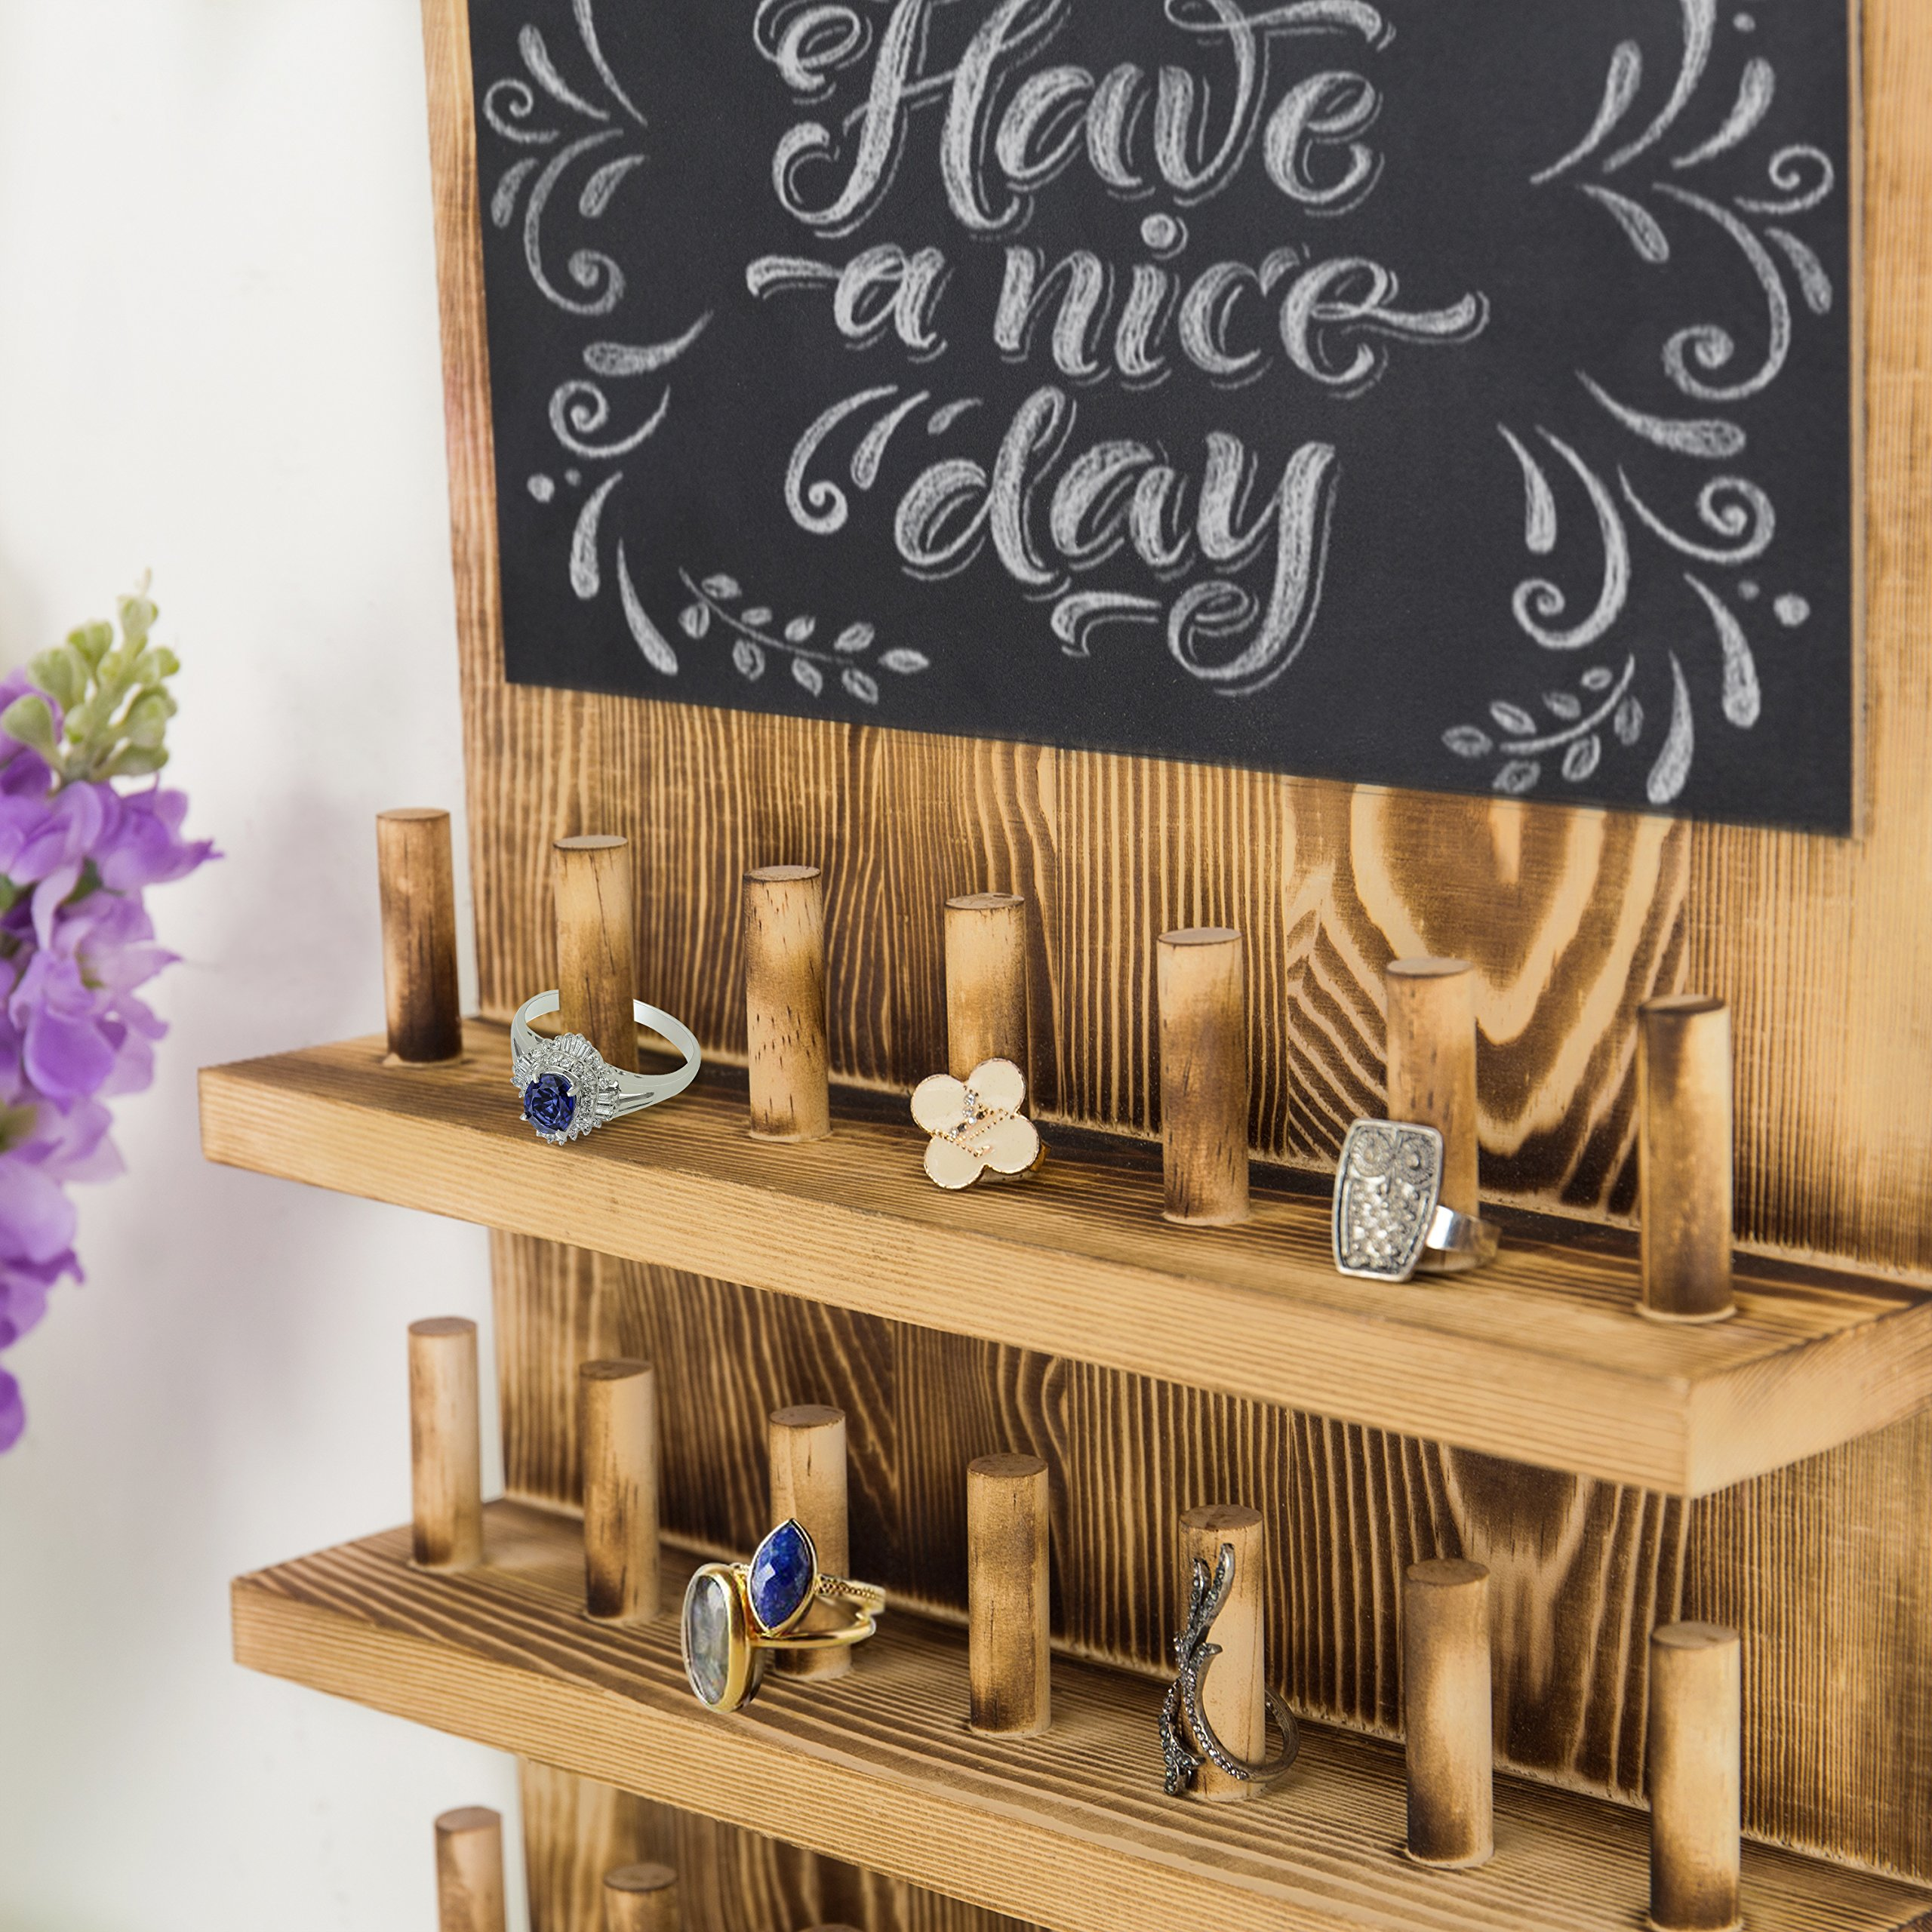 MyGift 3-Tier Wall-Mounted Wood Ring Display Rack with Chalkboard by MyGift (Image #3)